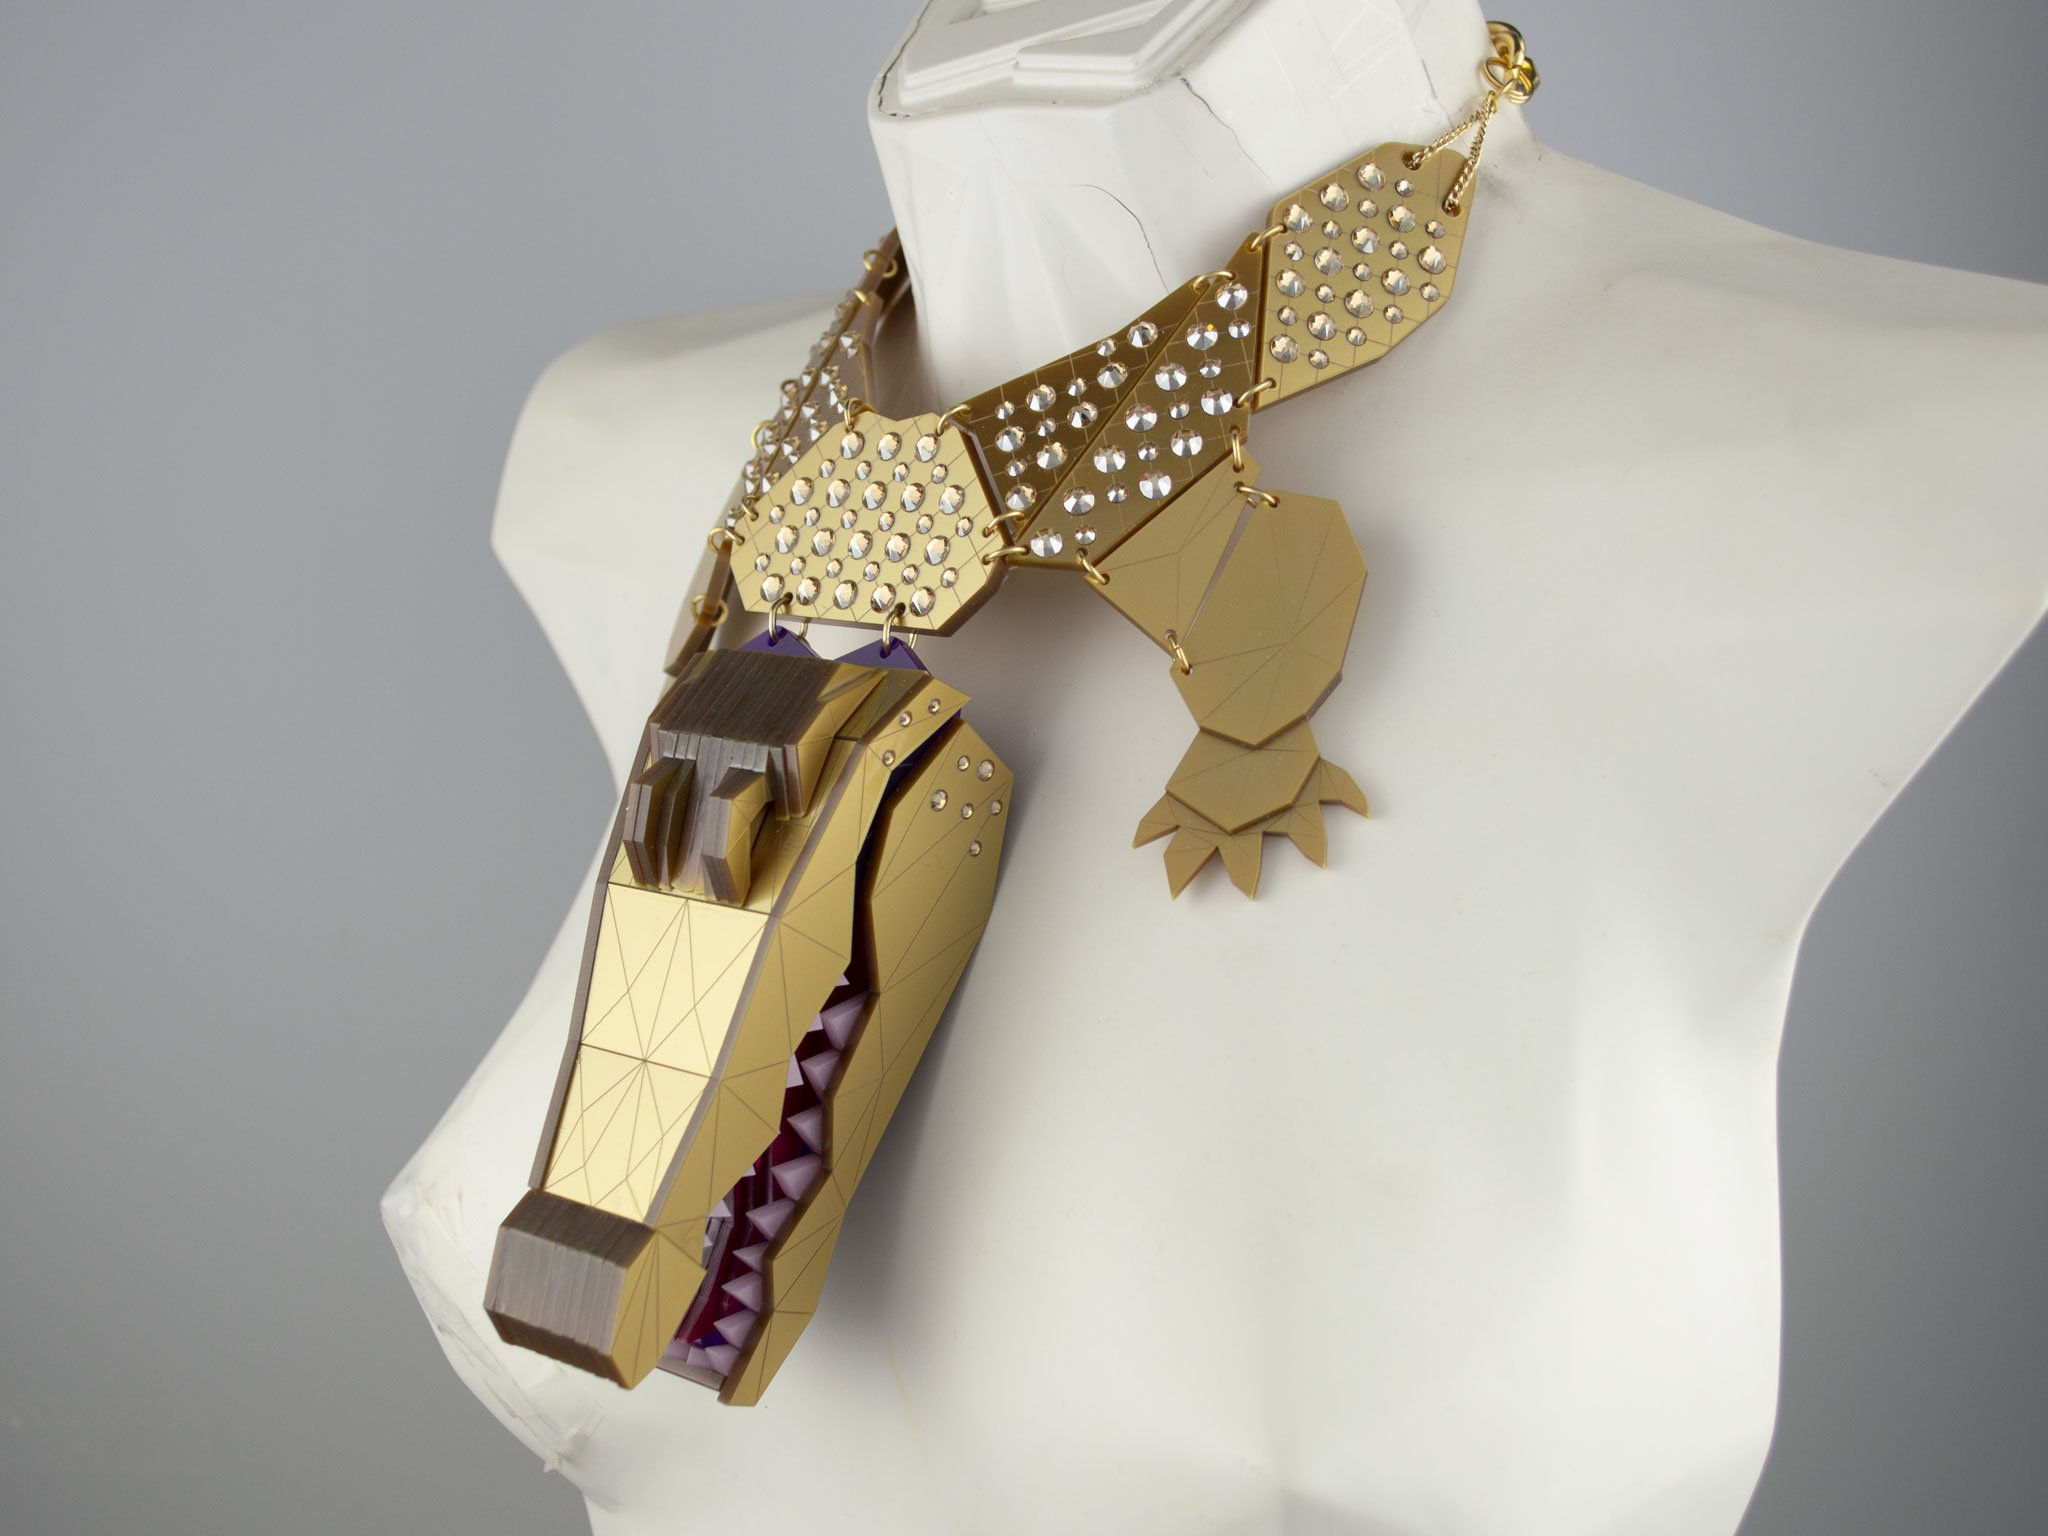 Statement crocodile necklace - gold jewel